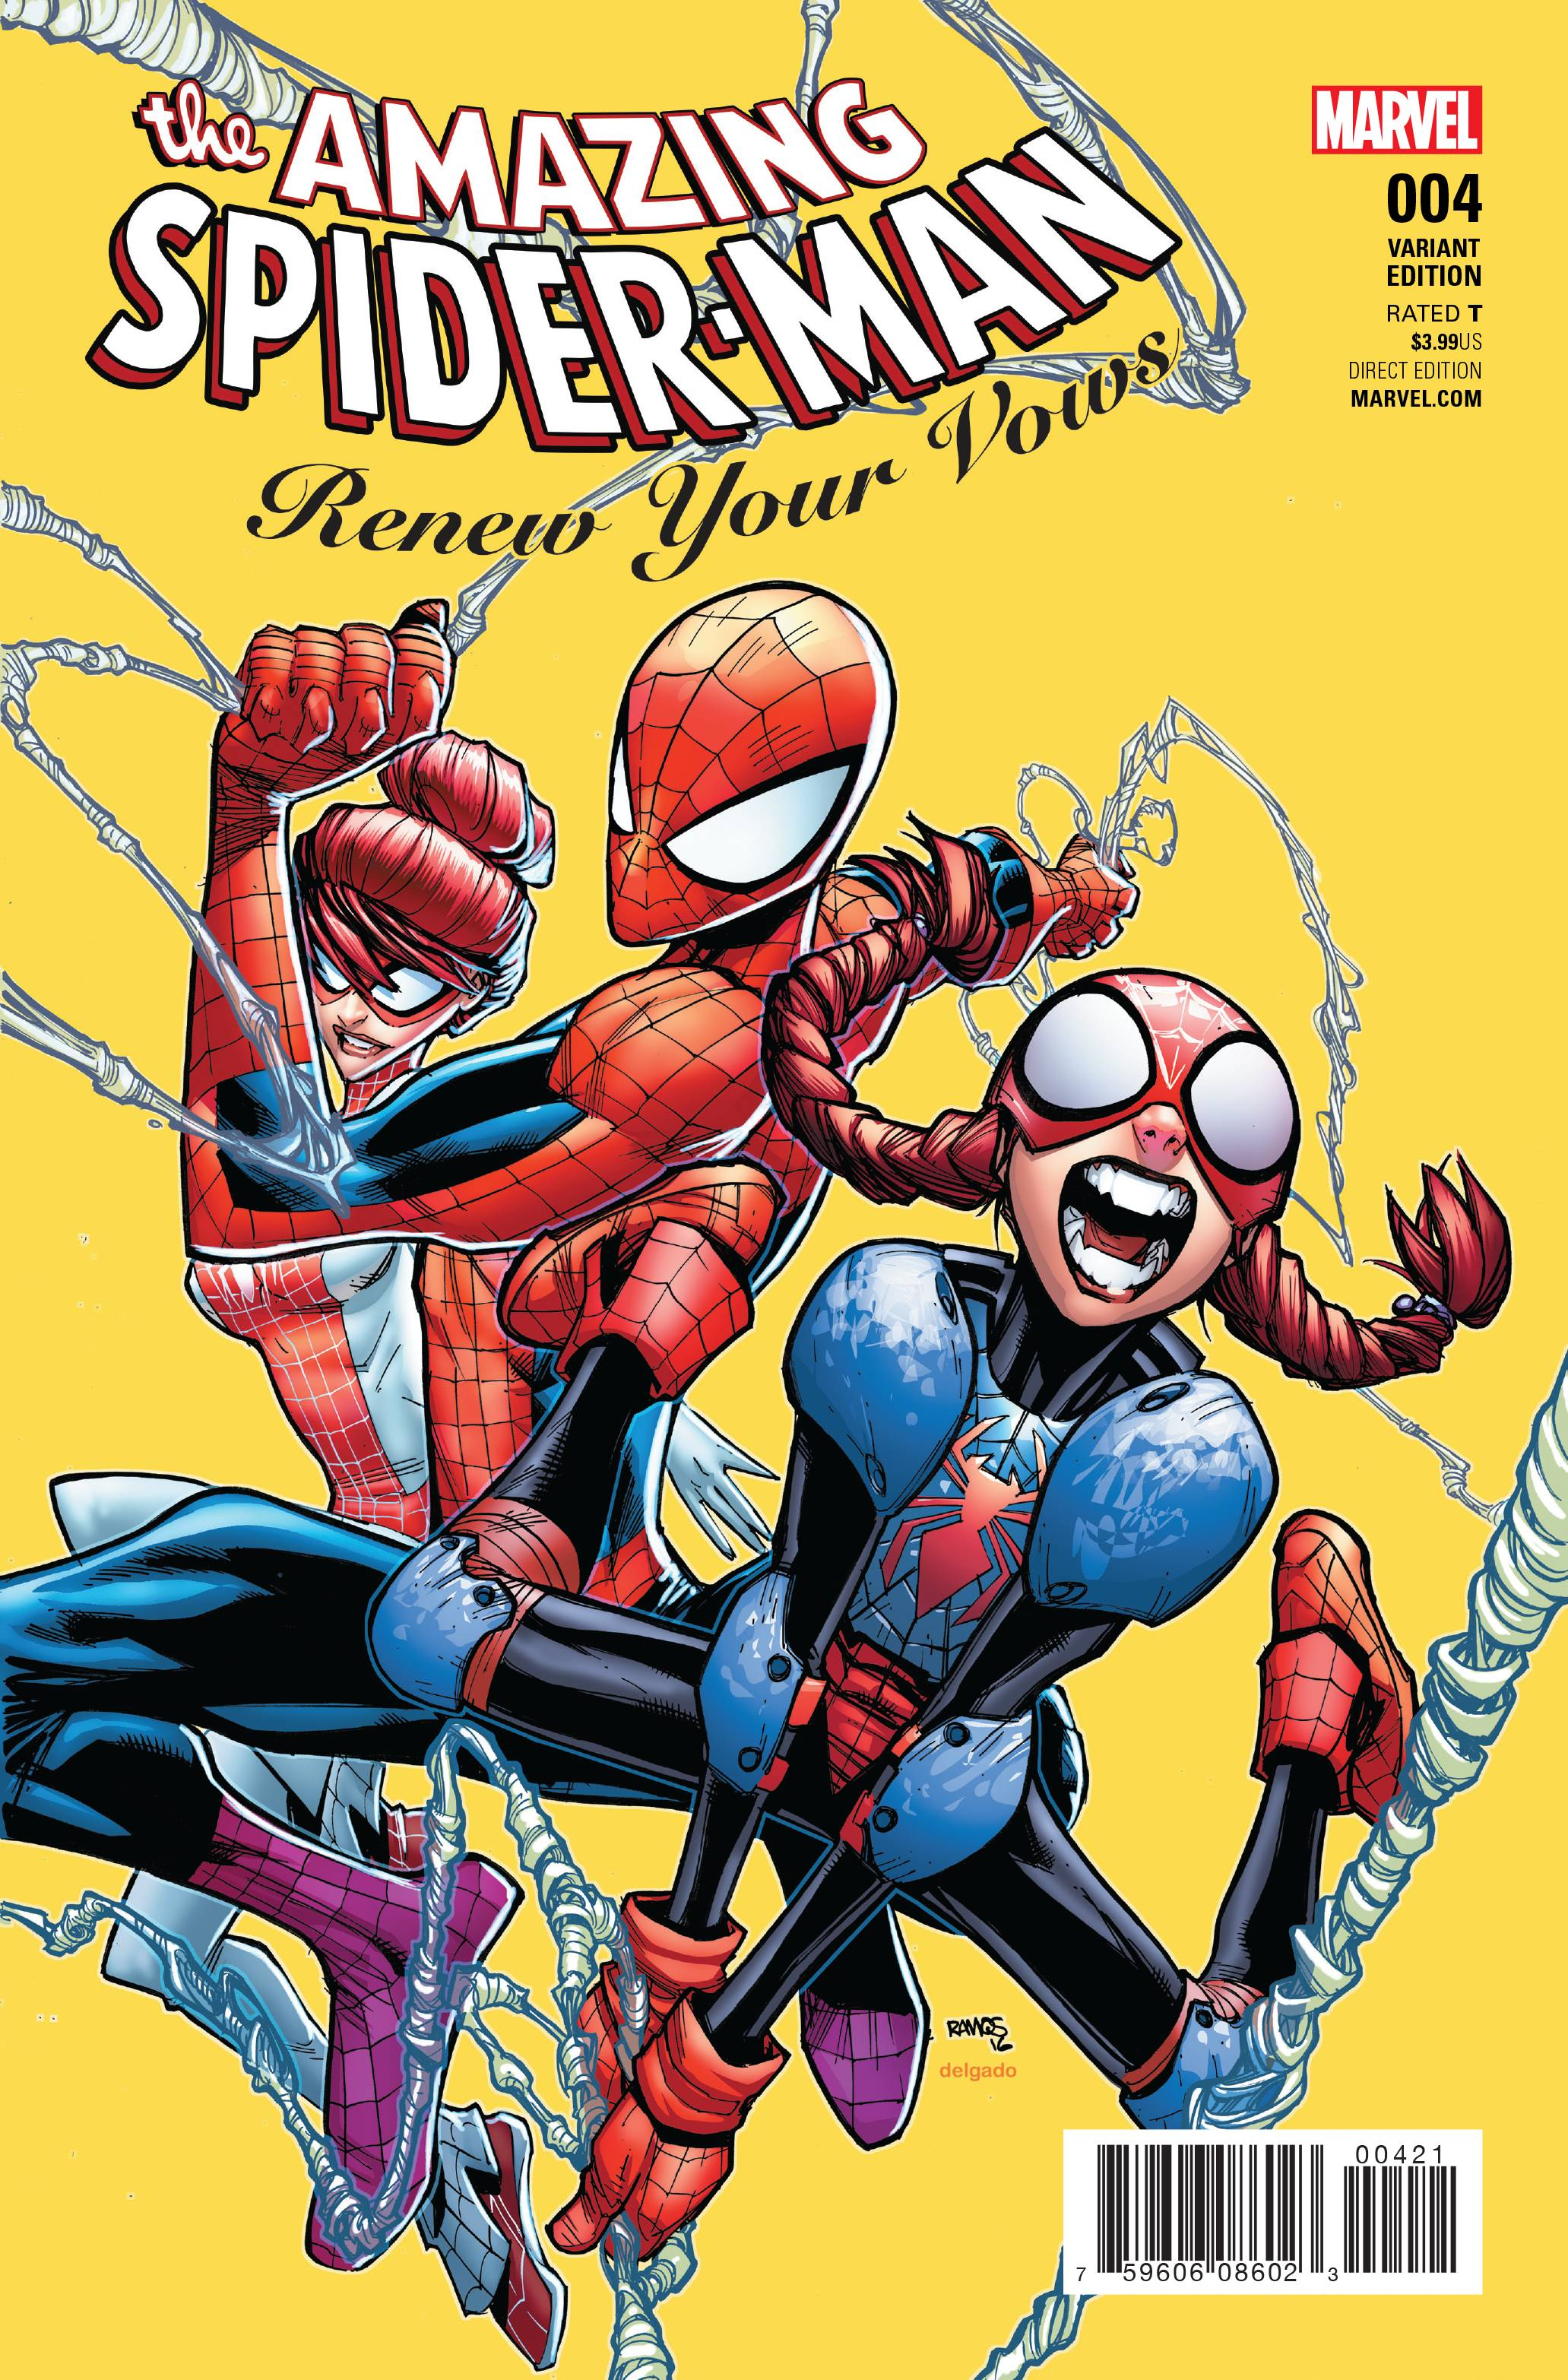 AMAZING SPIDER-MAN RENEW YOUR VOWS #4 RAMOS VAR